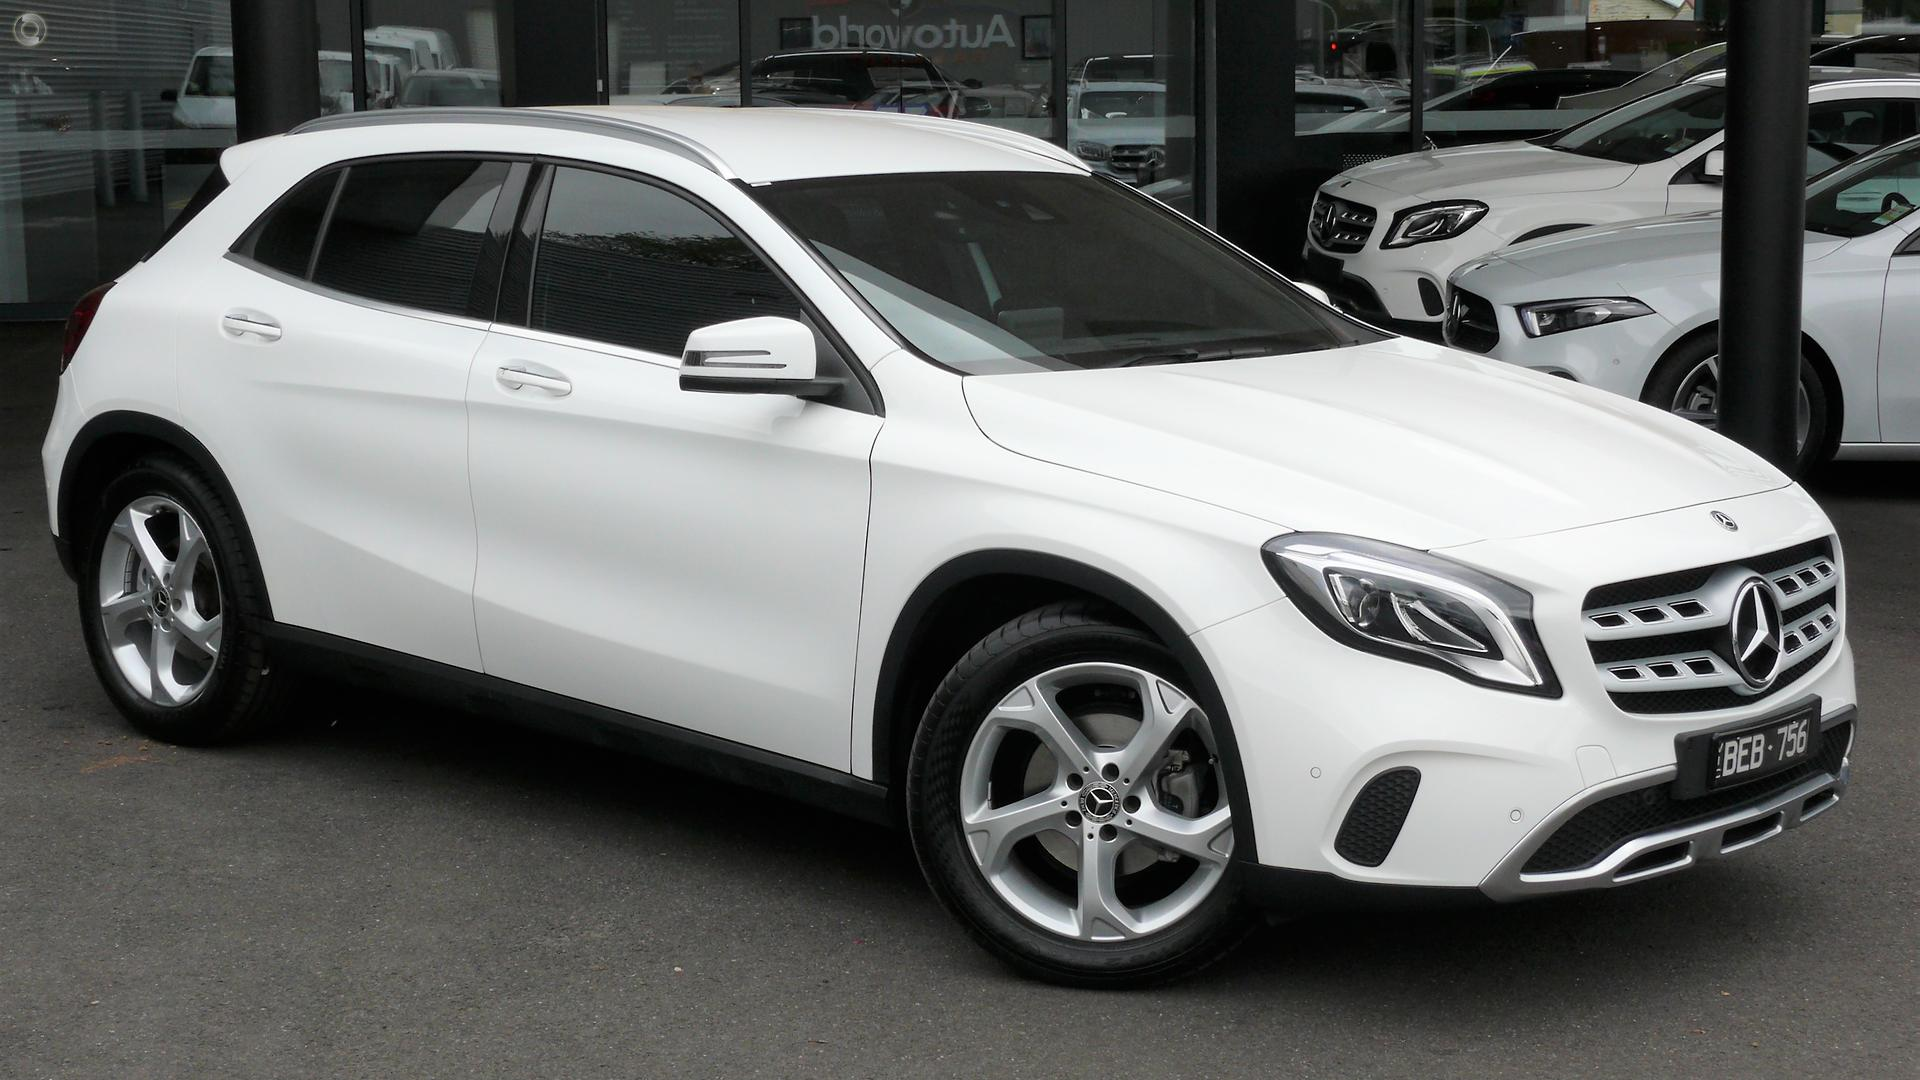 2018 Mercedes-Benz GLA 220 D Wagon